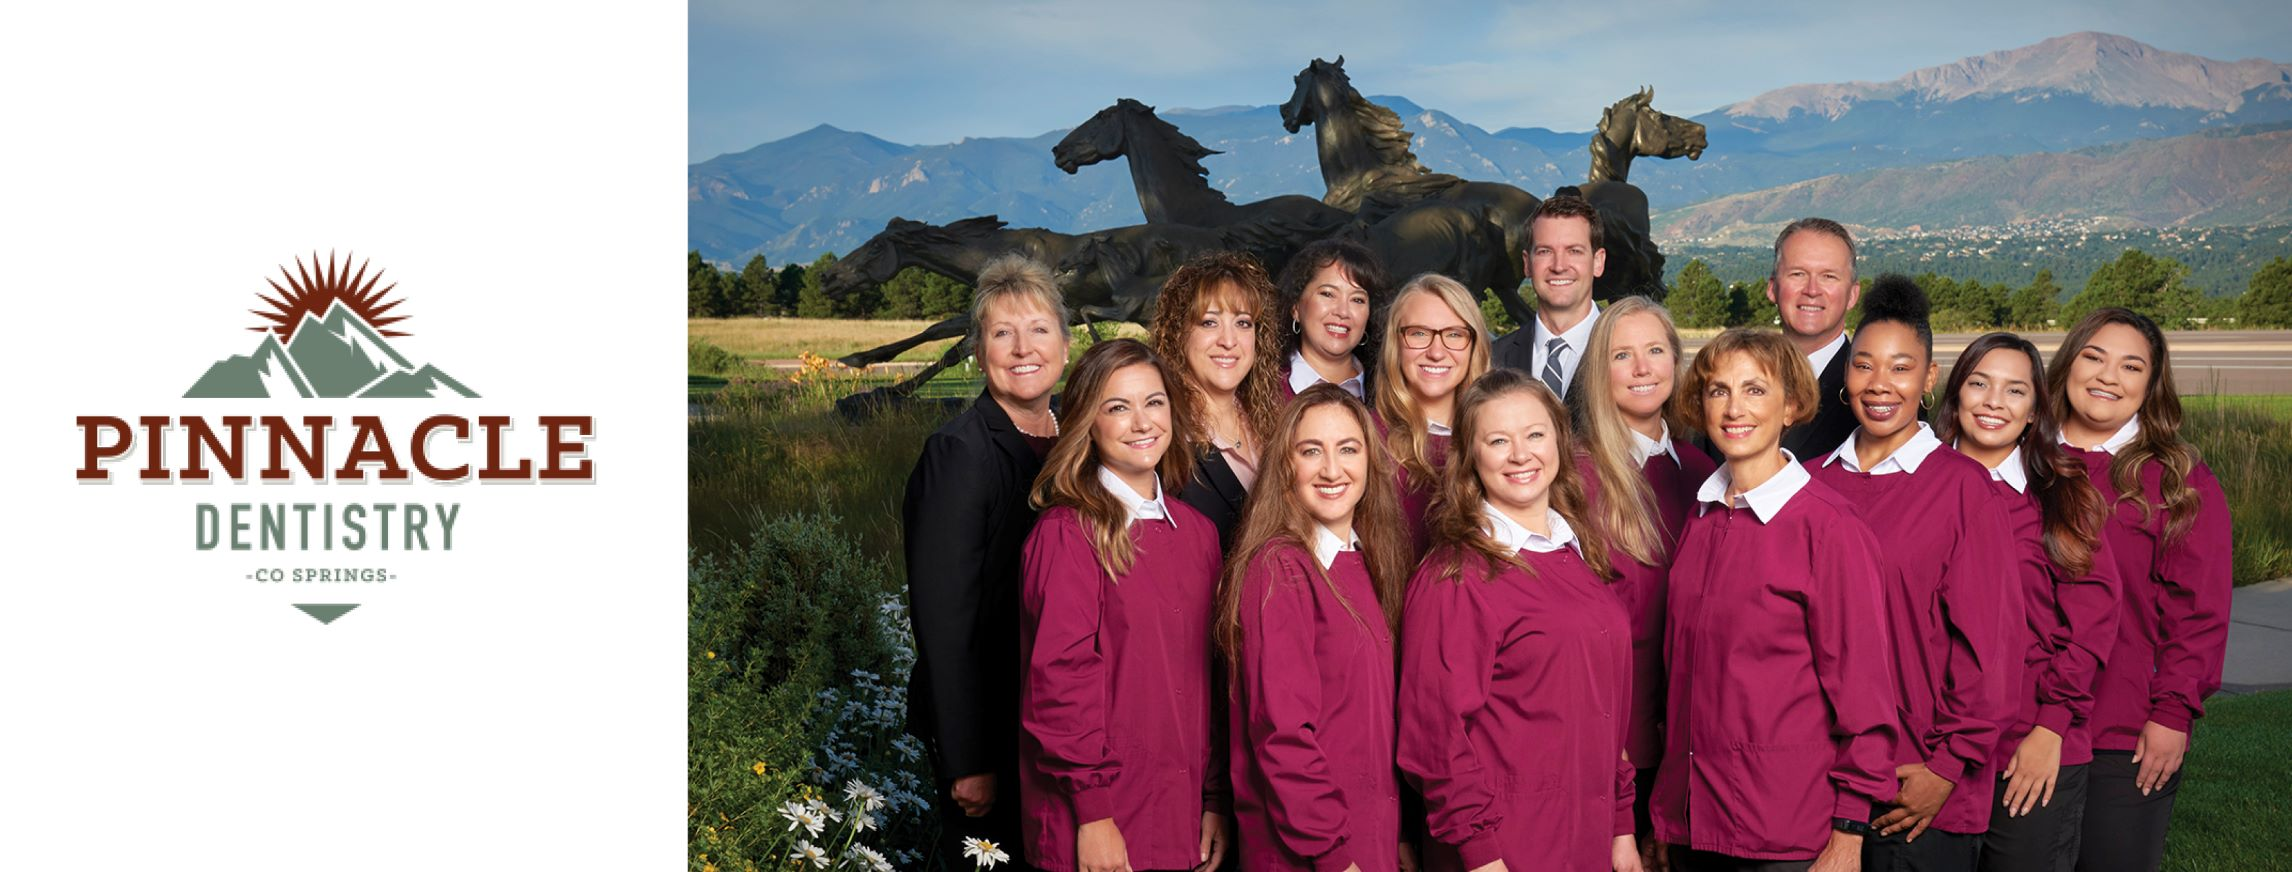 Pinnacle Dentistry reviews | Dentists at 2430 Research Pkwy - Colorado Springs CO